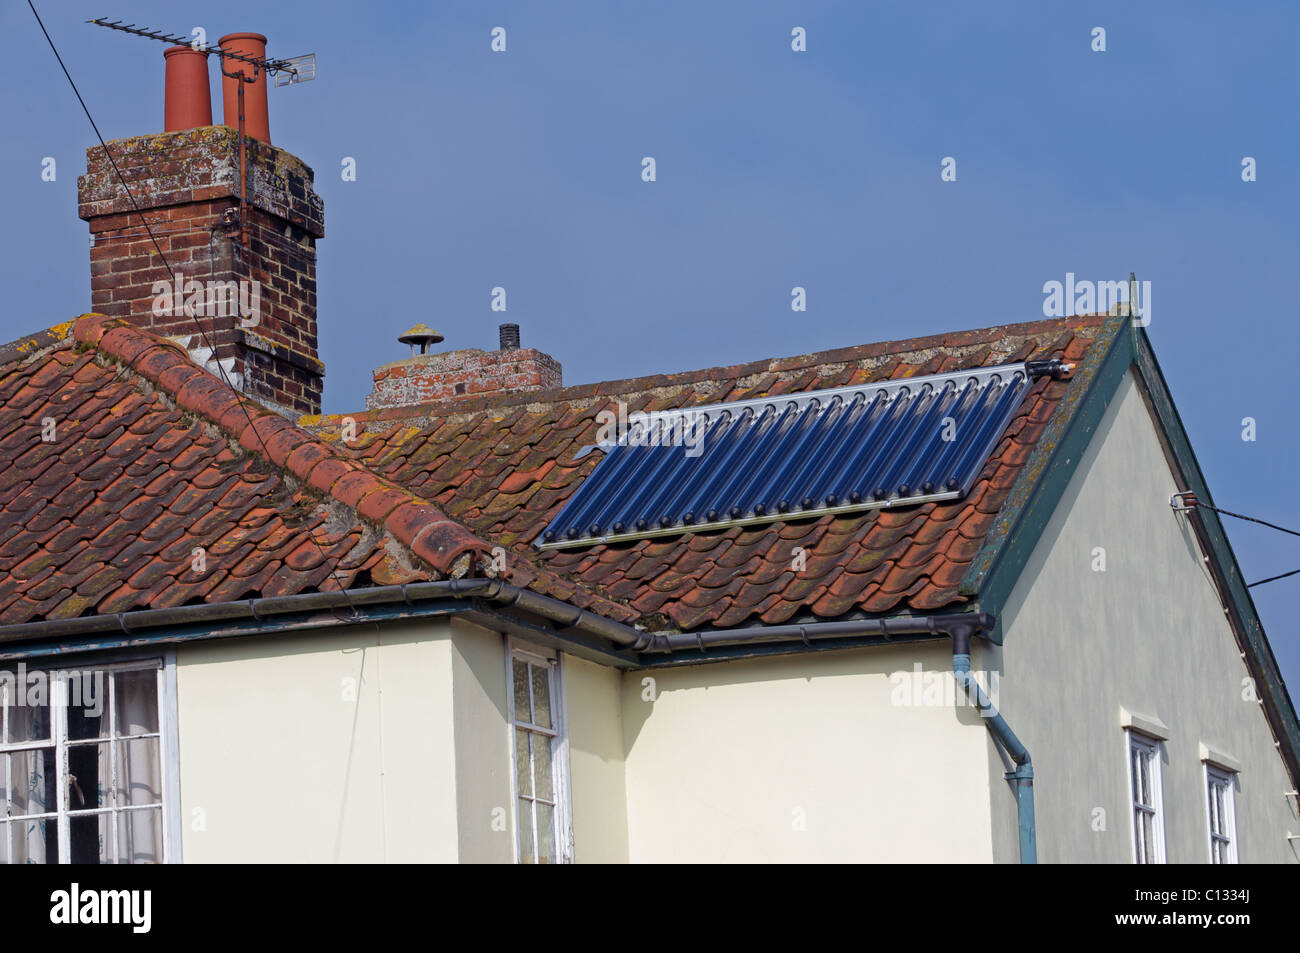 Solar Thermal Evacuated Tubes Stock Photos Amp Solar Thermal